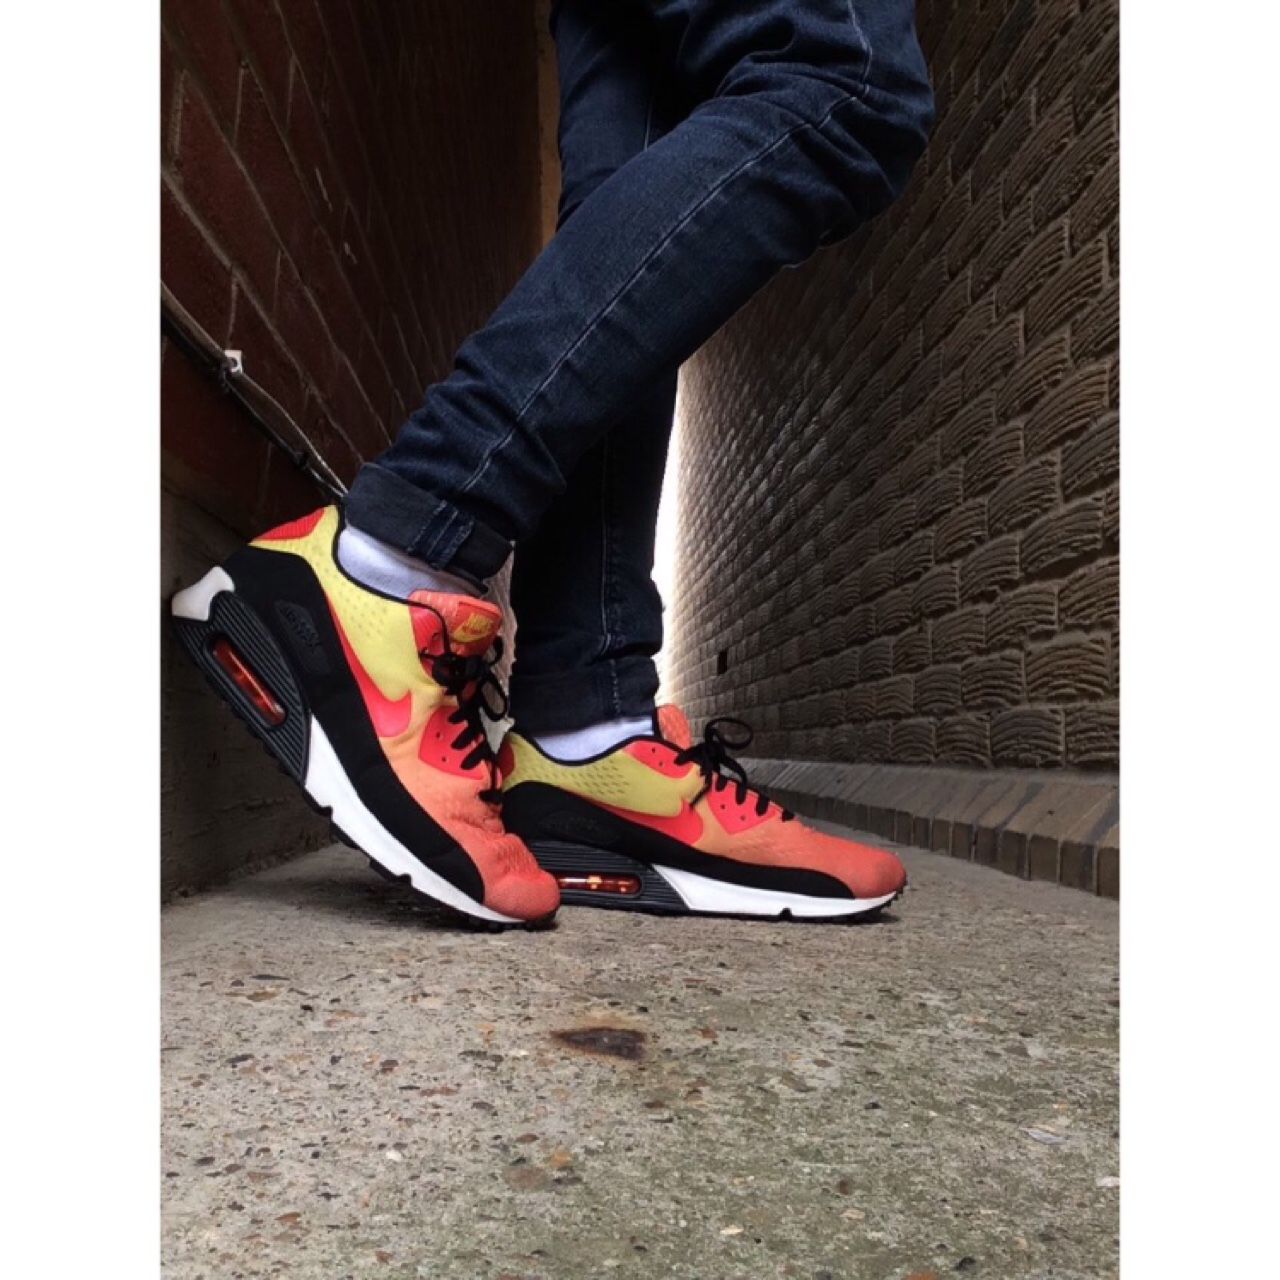 2012 nike air max 90 sunset pack ☀️ mad colours, mad